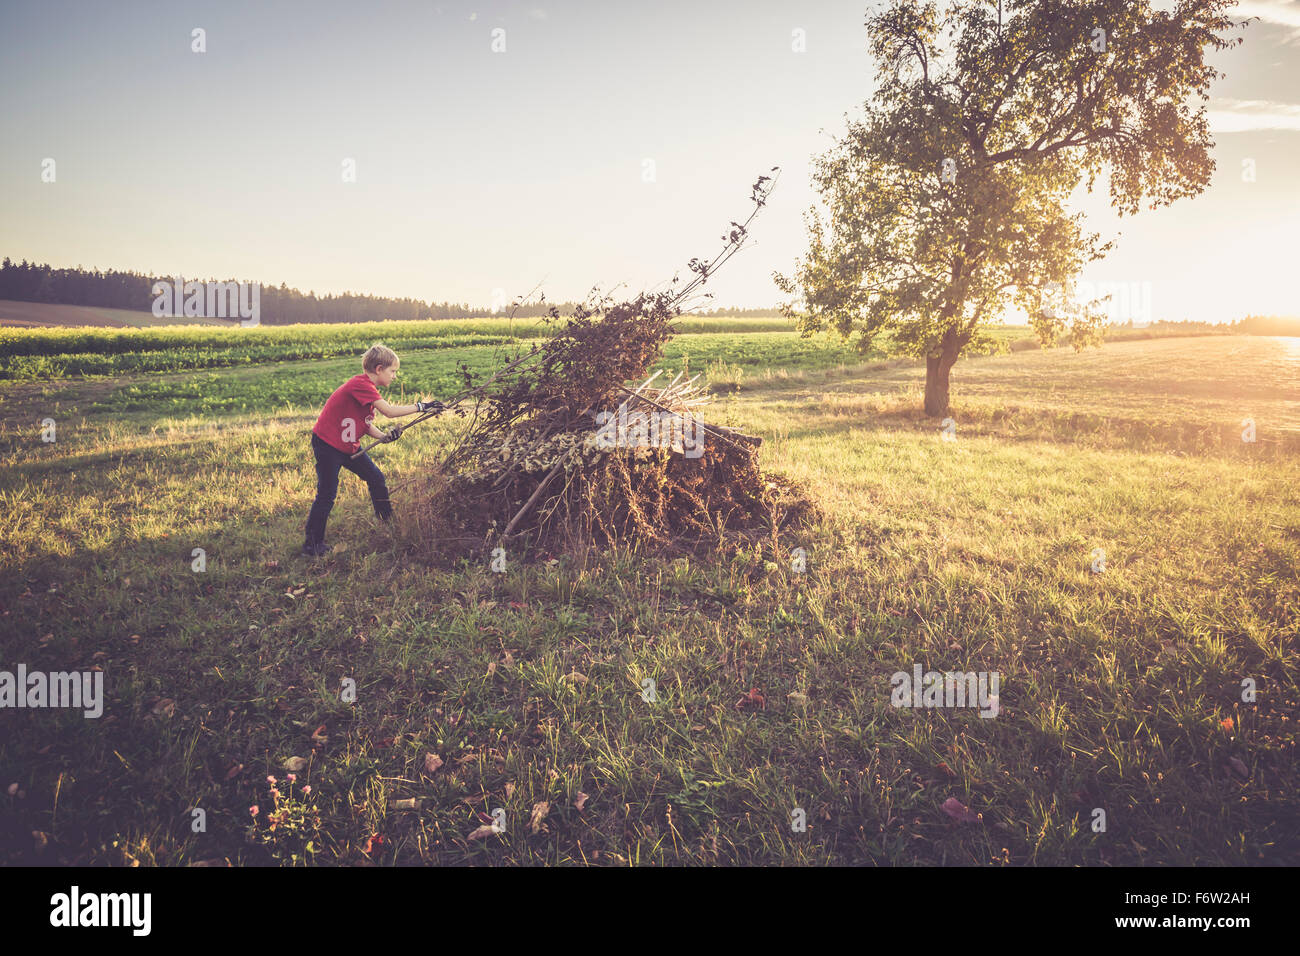 Boy preparing pile of twigs and leaves for a camp fire - Stock Image